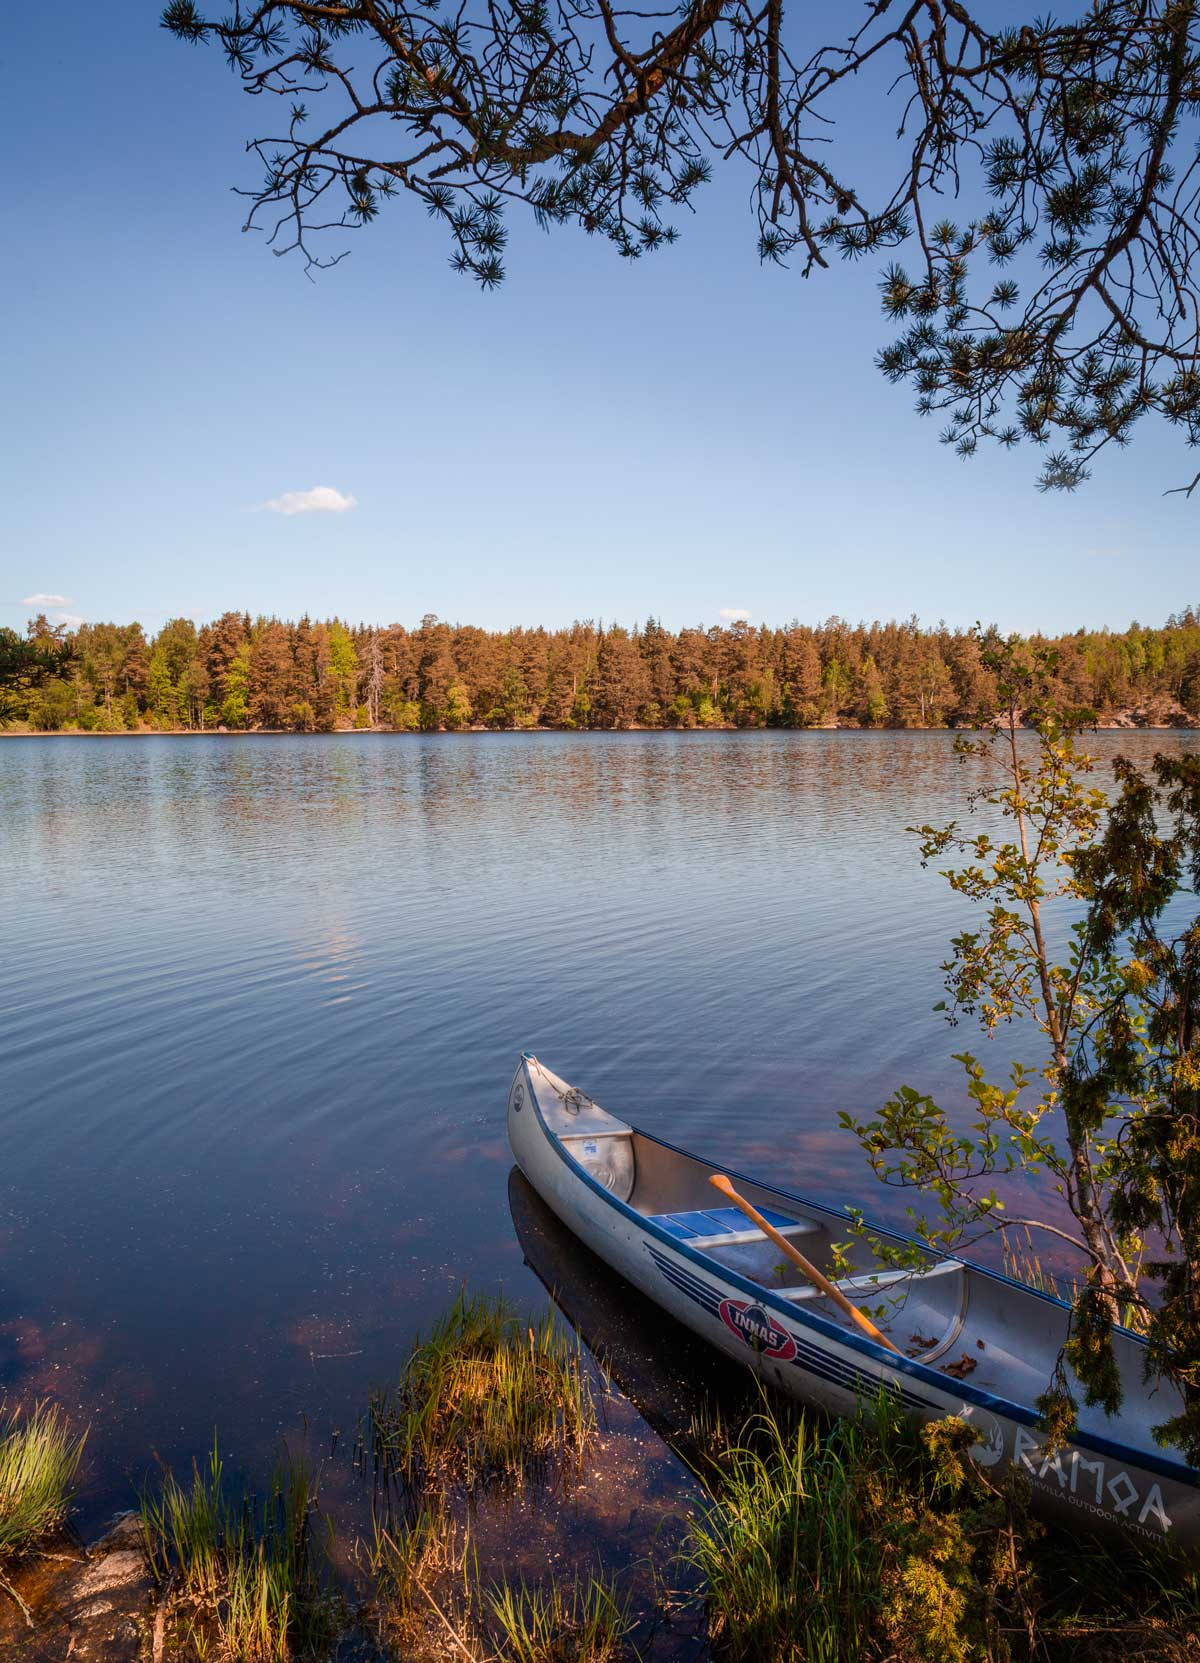 Canoe trip in Småland Sweden on our very own island